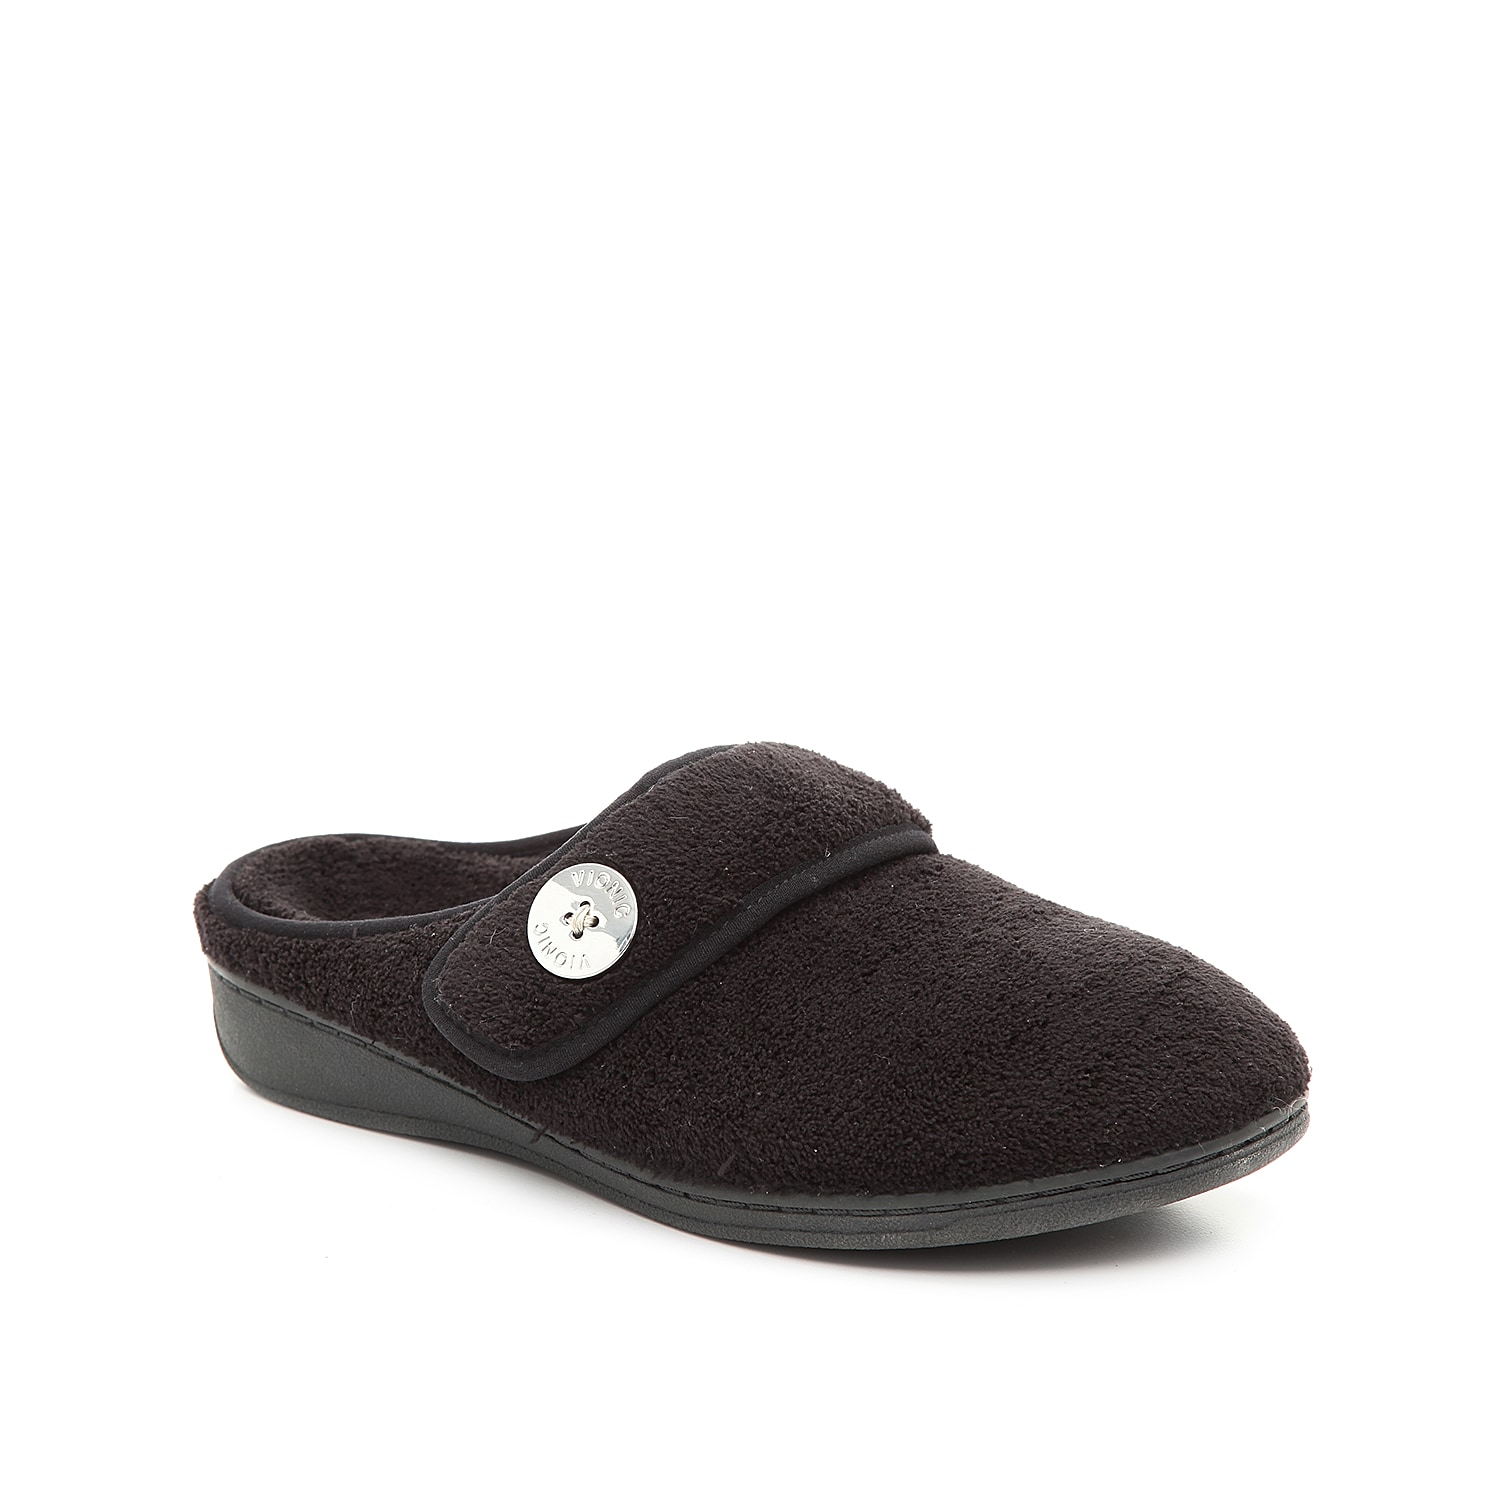 Slip on the Sadie scuff slipper from Vionic for ultimate comfort all day long. The microfiber finish and hook and loop strap will leave your feet feeling secure and relaxed!